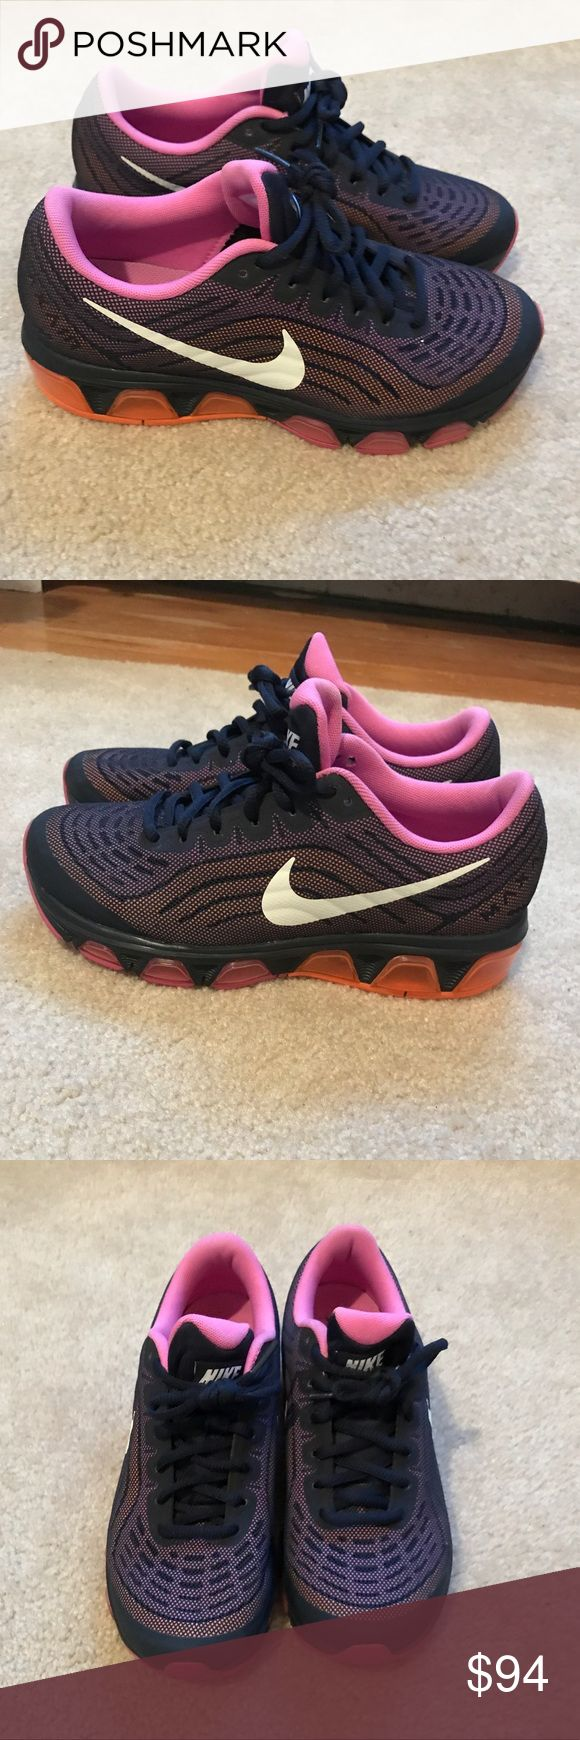 Nike air max navy pink and orange Women's Nike air max 2014. Very rare color. Navy blue with pink and orange accents. Navy blue laces. Excellent condition only worn a few times! No damage. Nike 6.5- usually wear a 6 in other shoe brands. Nike Shoes Sneakers